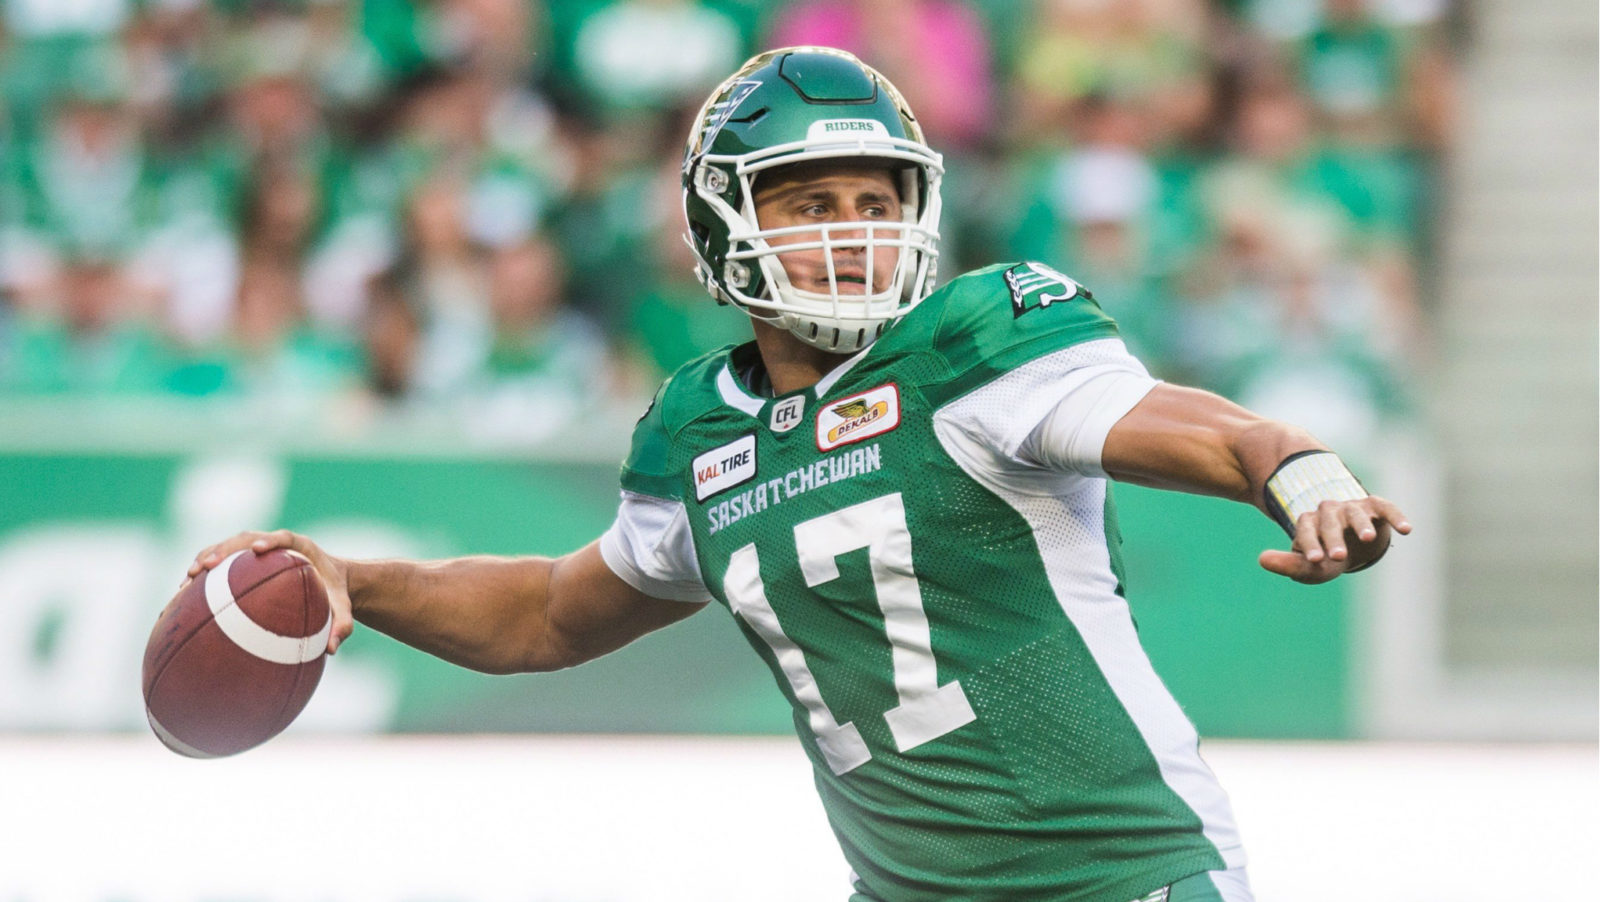 Riders secure home playoff game with 35-16 win over B.C.